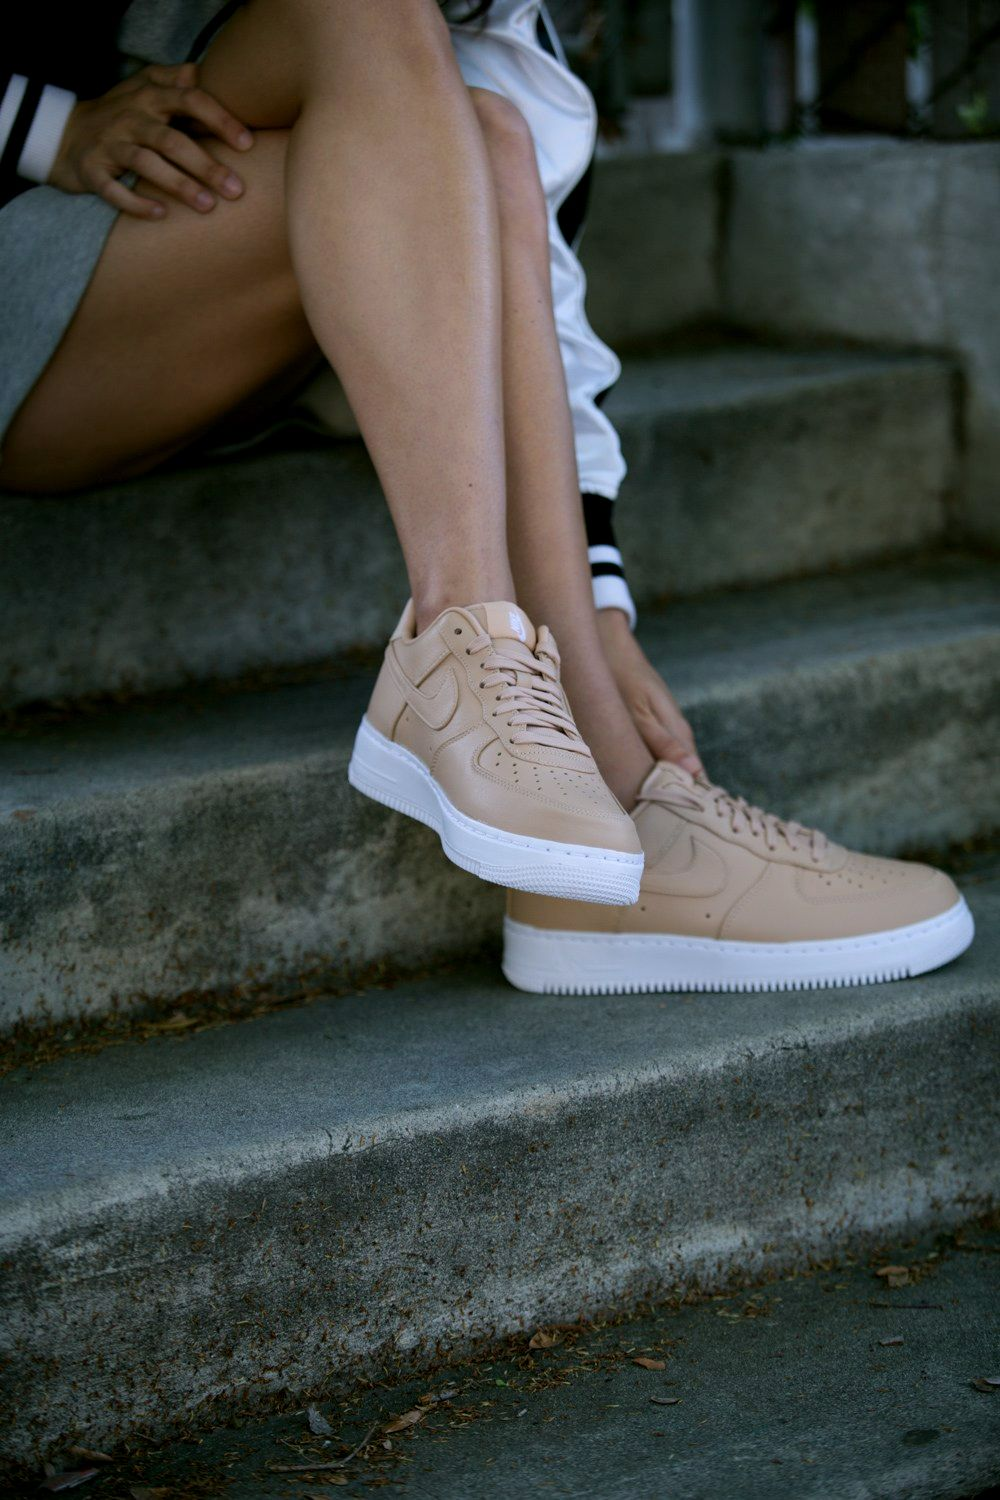 info for b08bb c0cae Nice Legs in af1 sneakers streetstyle Mais